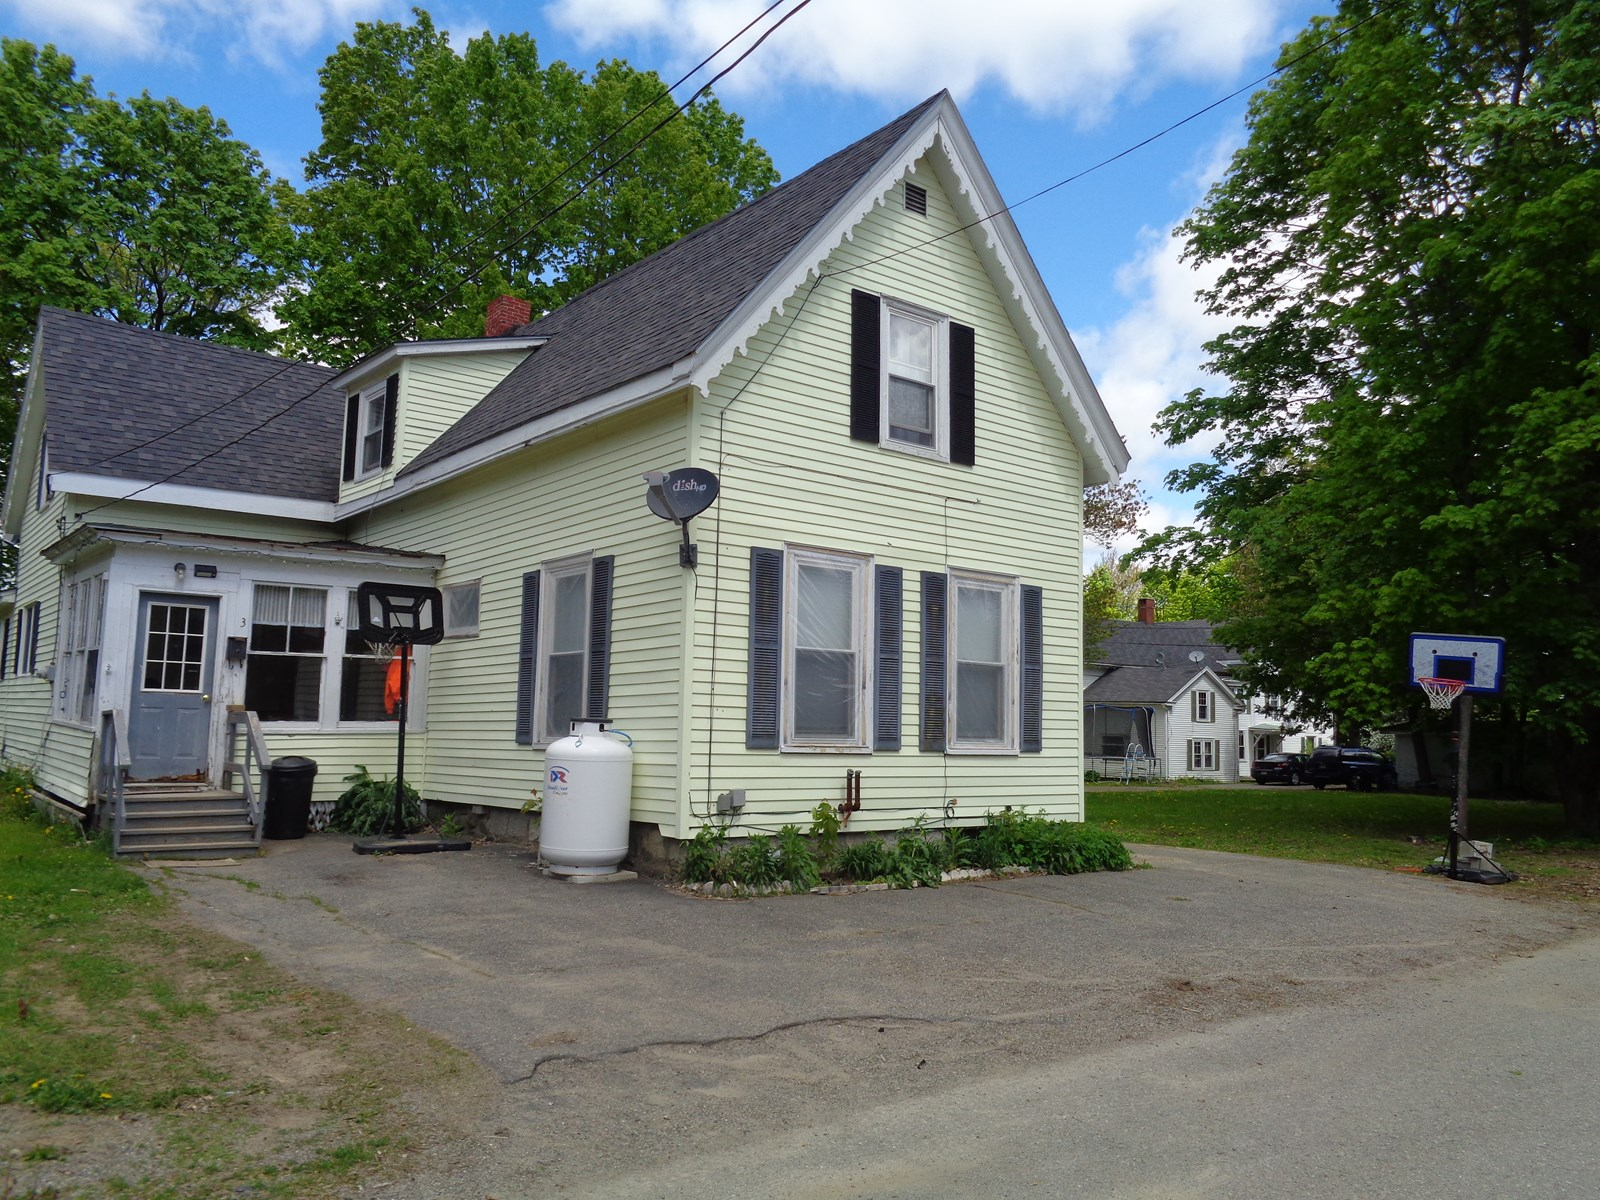 Beautifully Maintained Historic Home For Sale in Maine